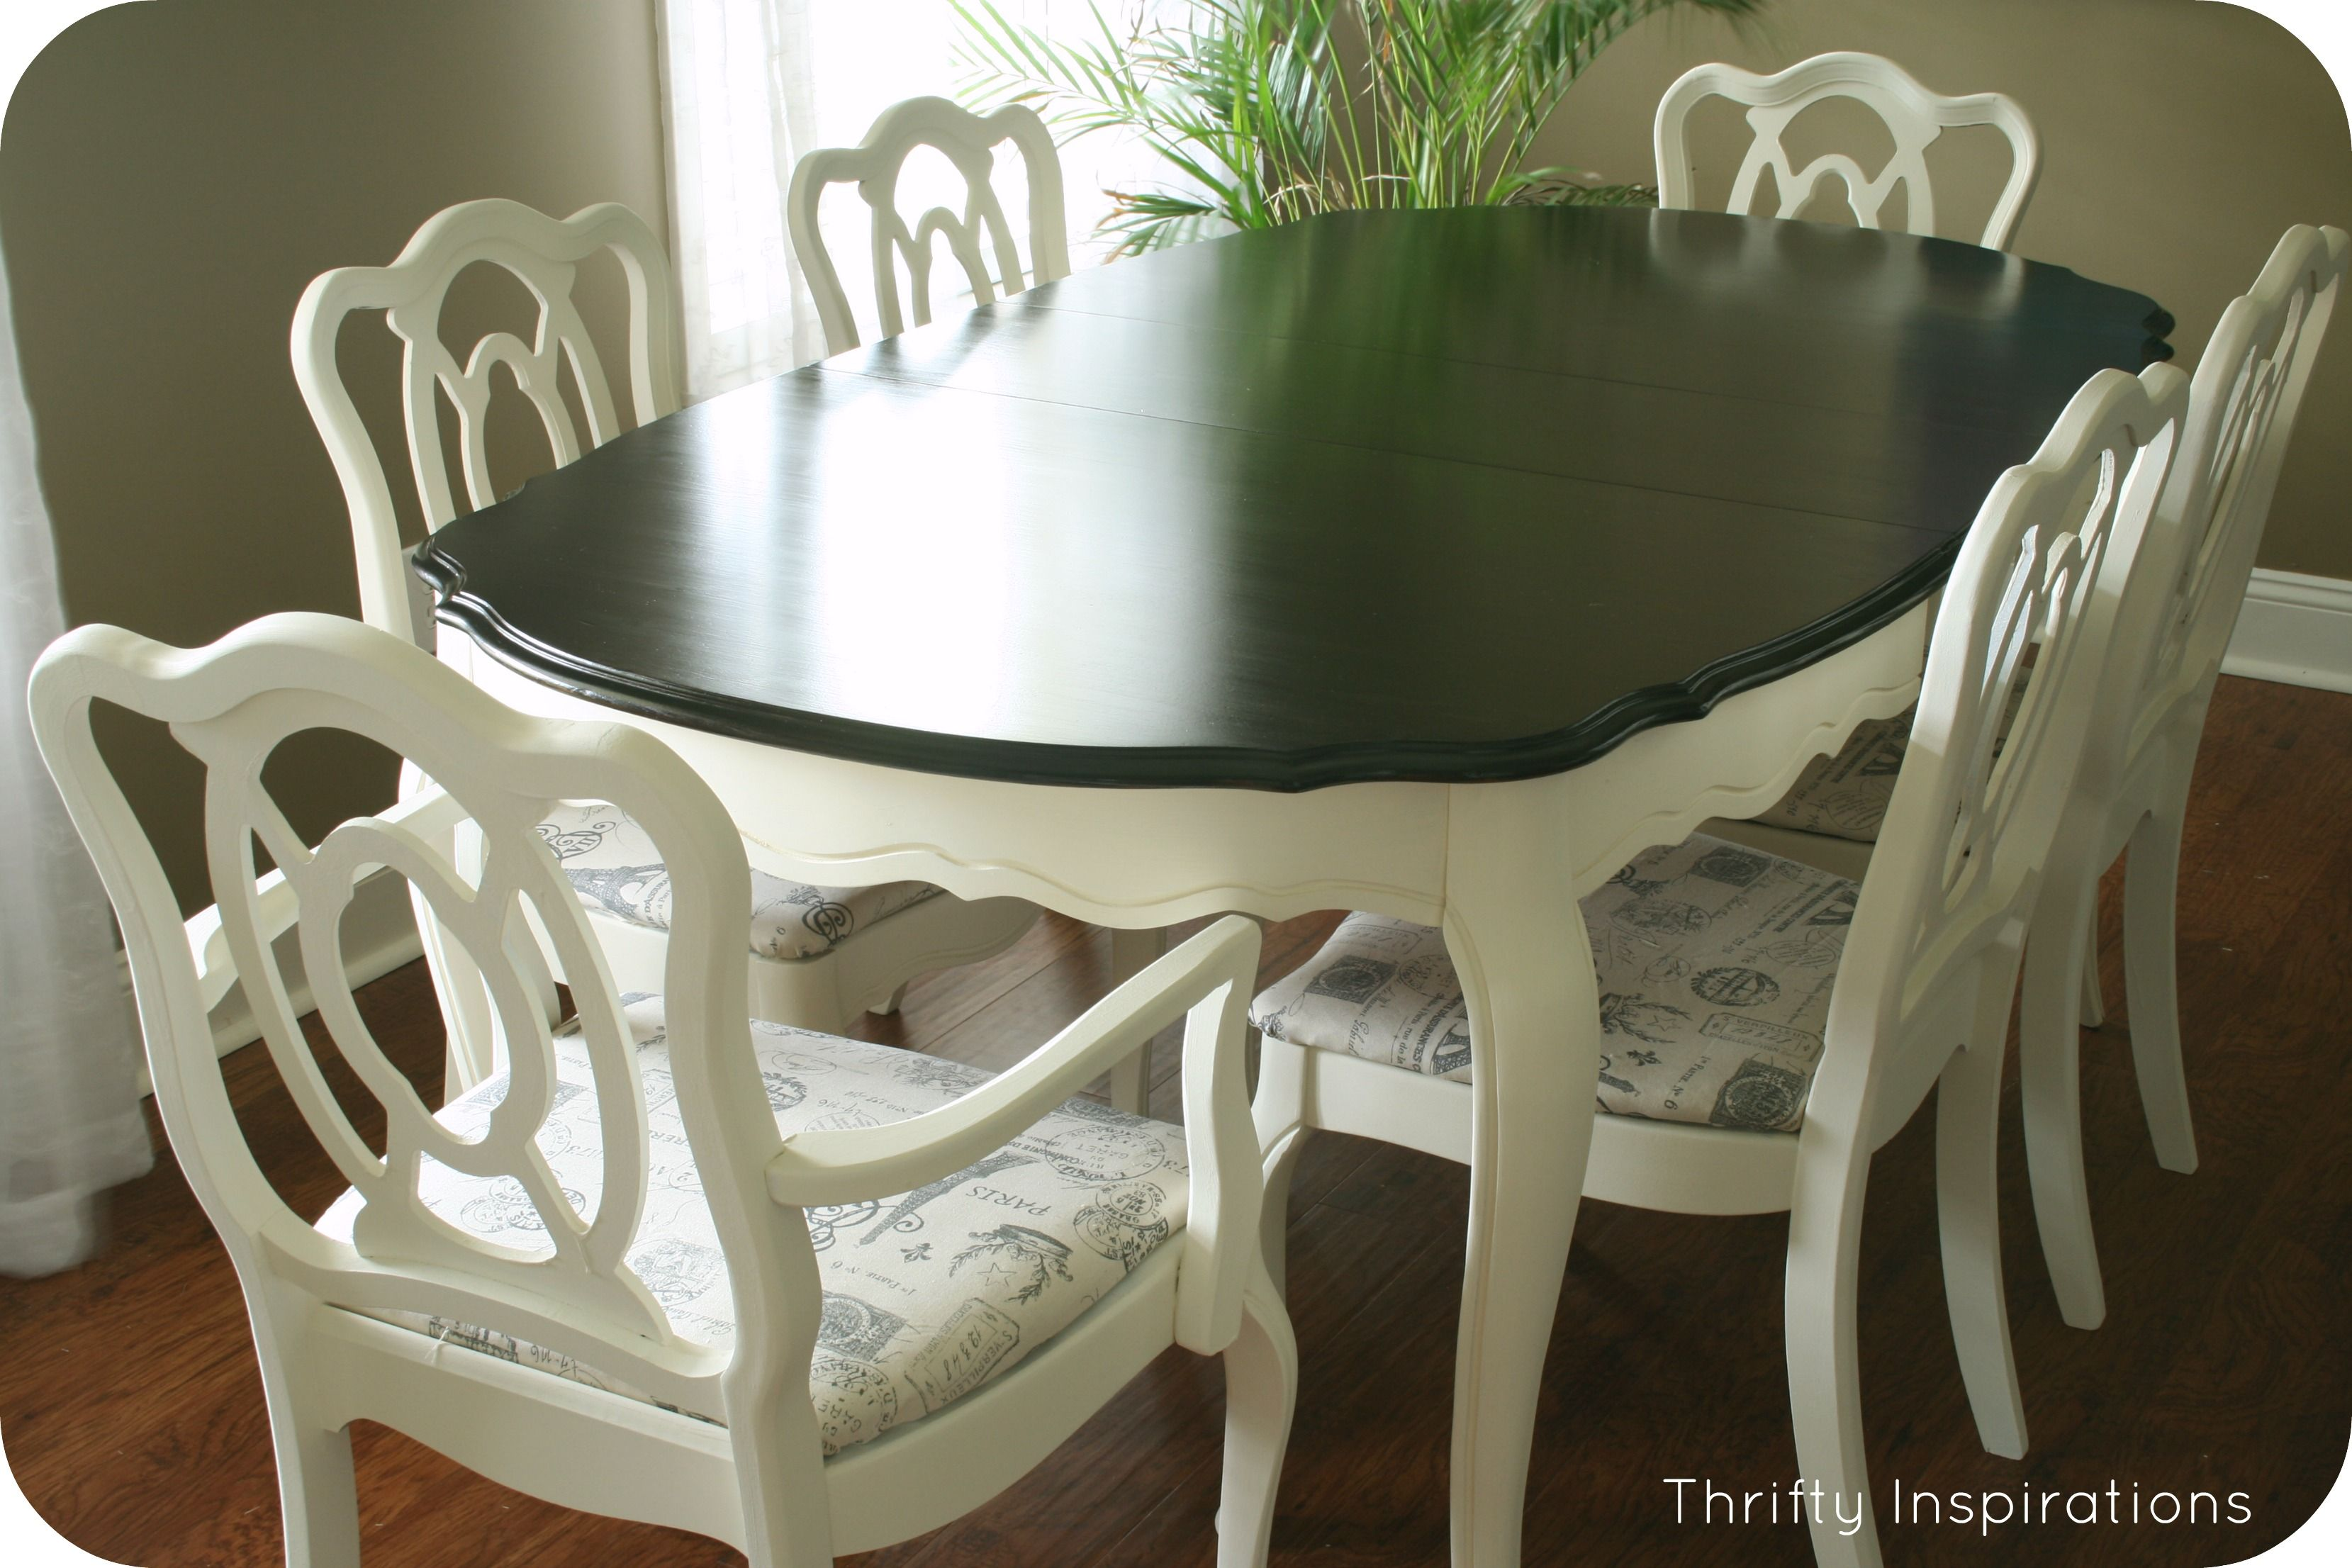 10 French Provincial Dining Room Set, White French Provincial Dining Room Set